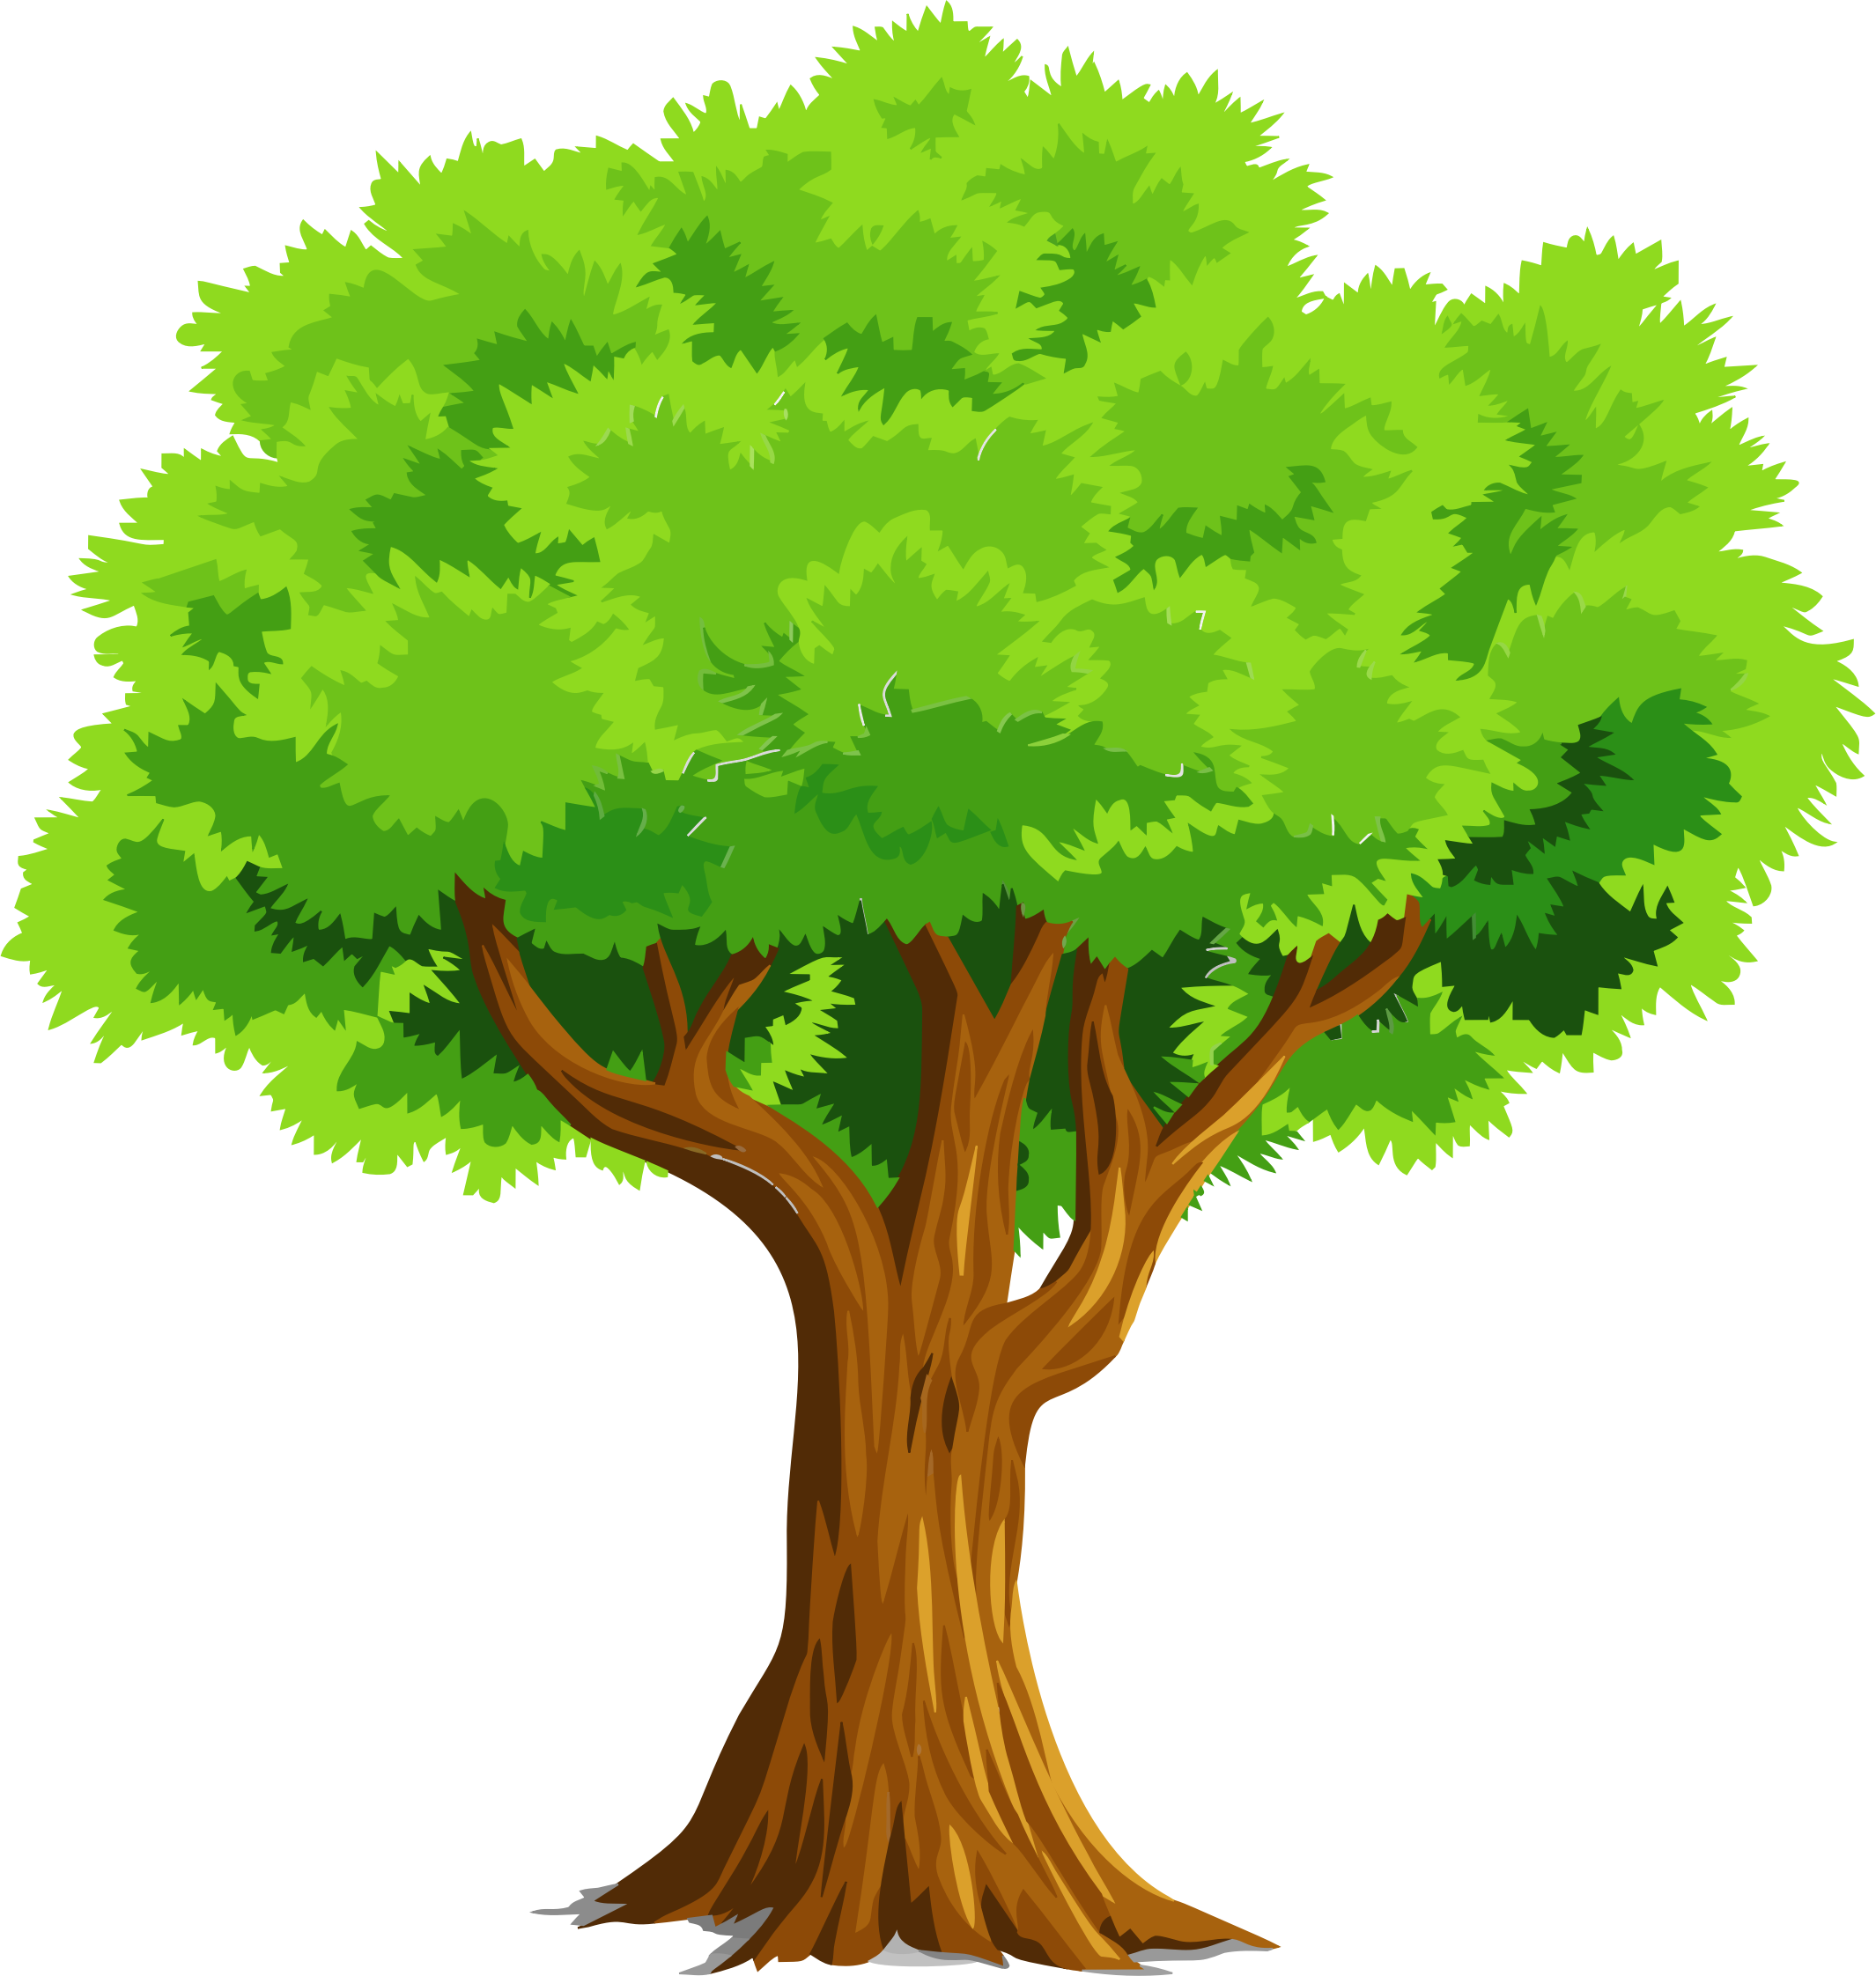 Colorful Natural Tree Vector Clipart image.